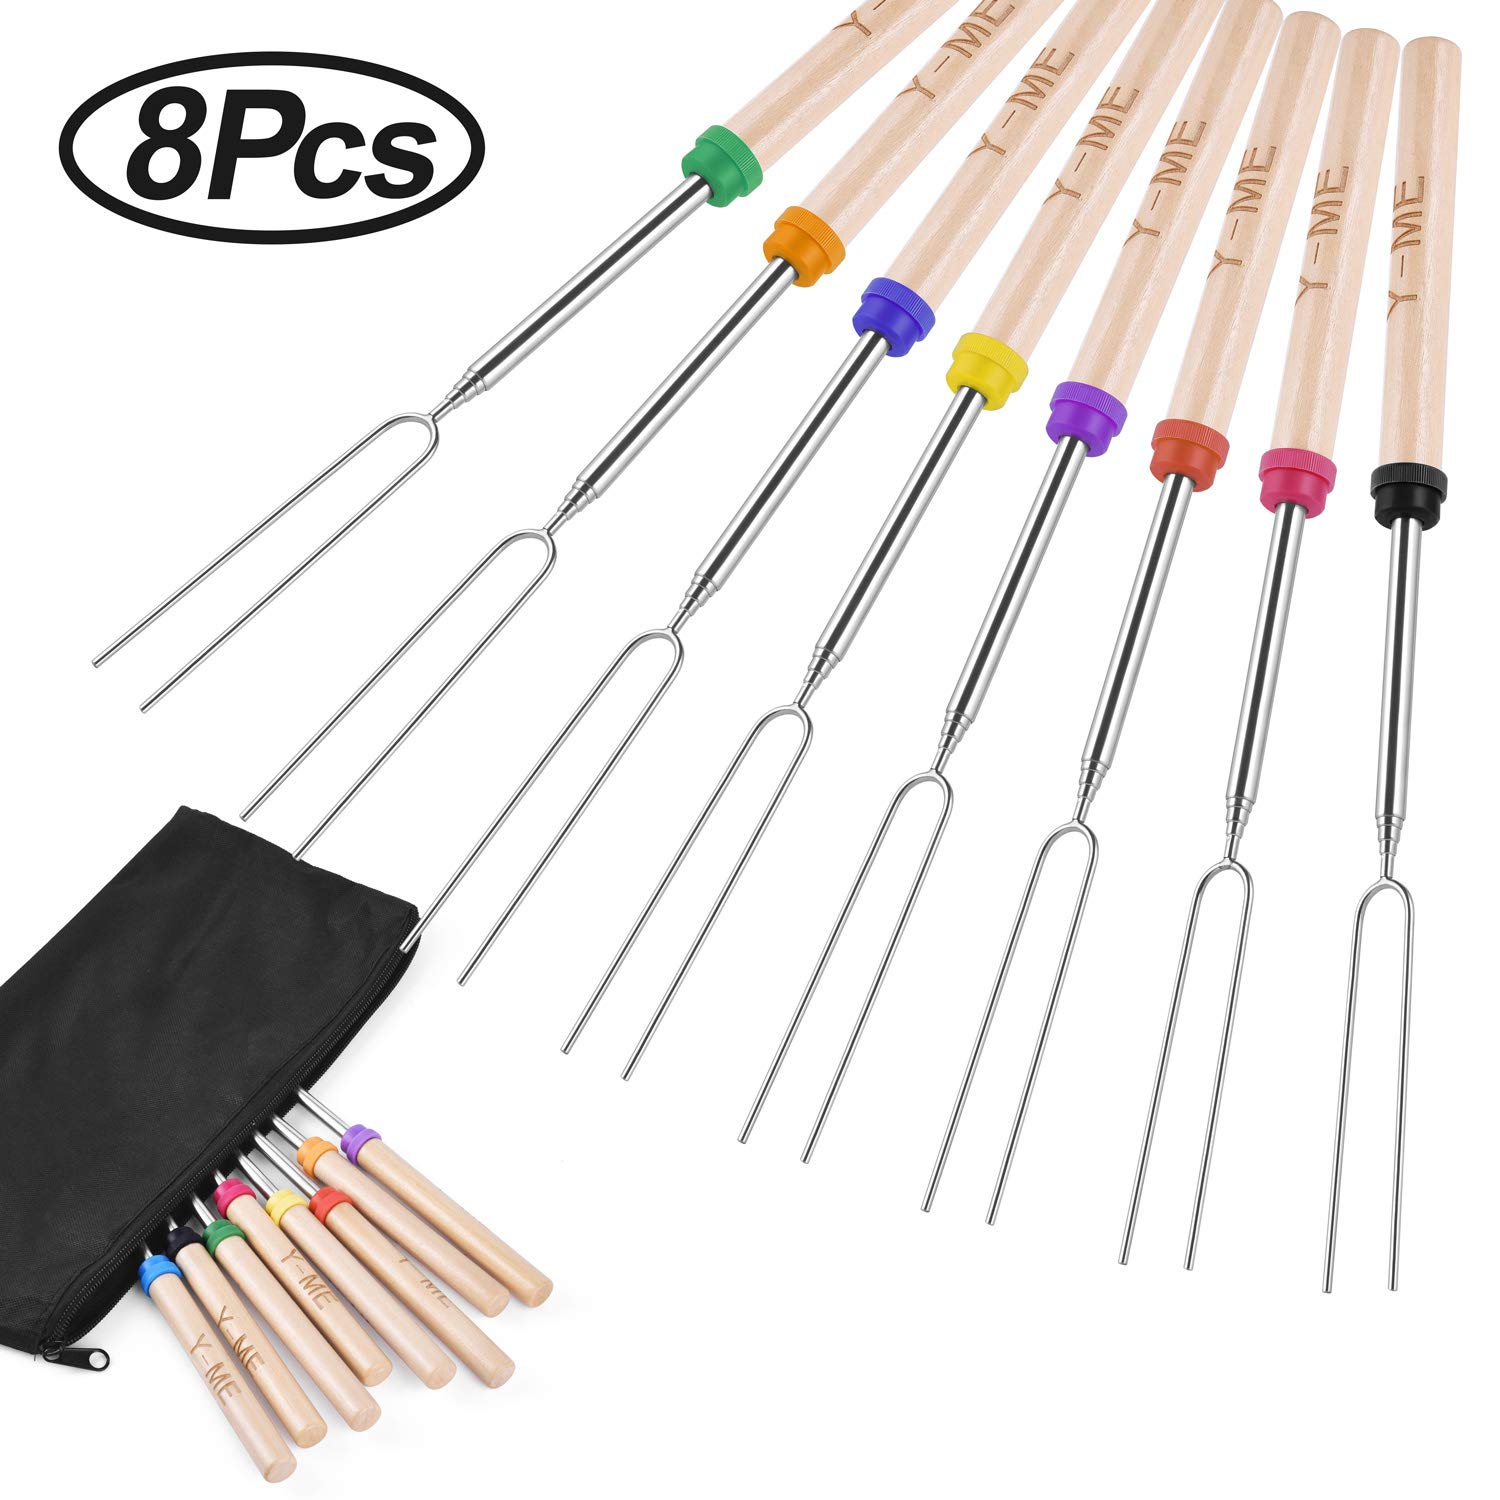 Y-ME Marshmallow Roasting Sticks Set of 8 Telescoping Smores Skewers Stainless Steel BBQ Barbecue Forks & Hot Dog Fork 32 Inch Extendable Cookware Kit for Patio Fire Pit, Camping, Campfire, Bonfire